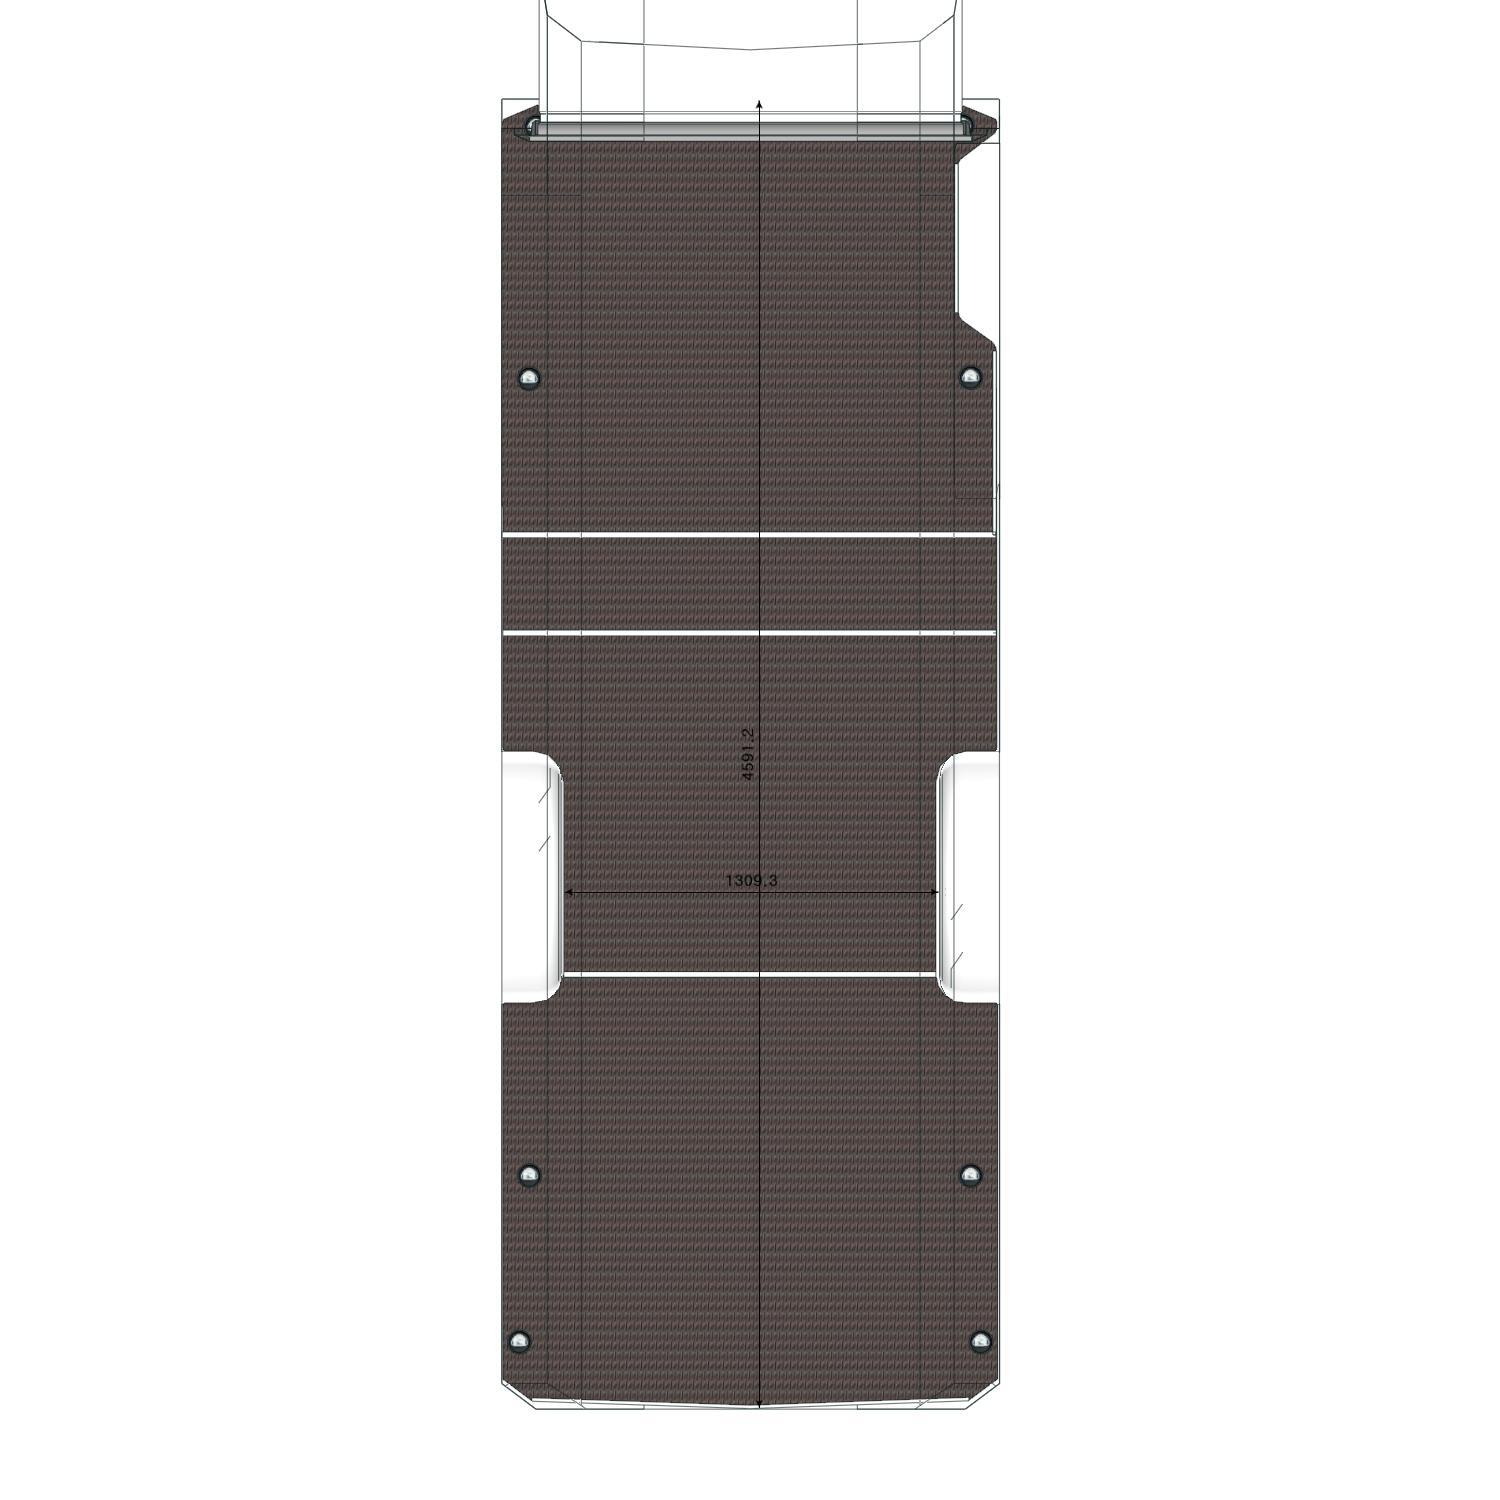 Plancher Daily Iveco L3 roues simples